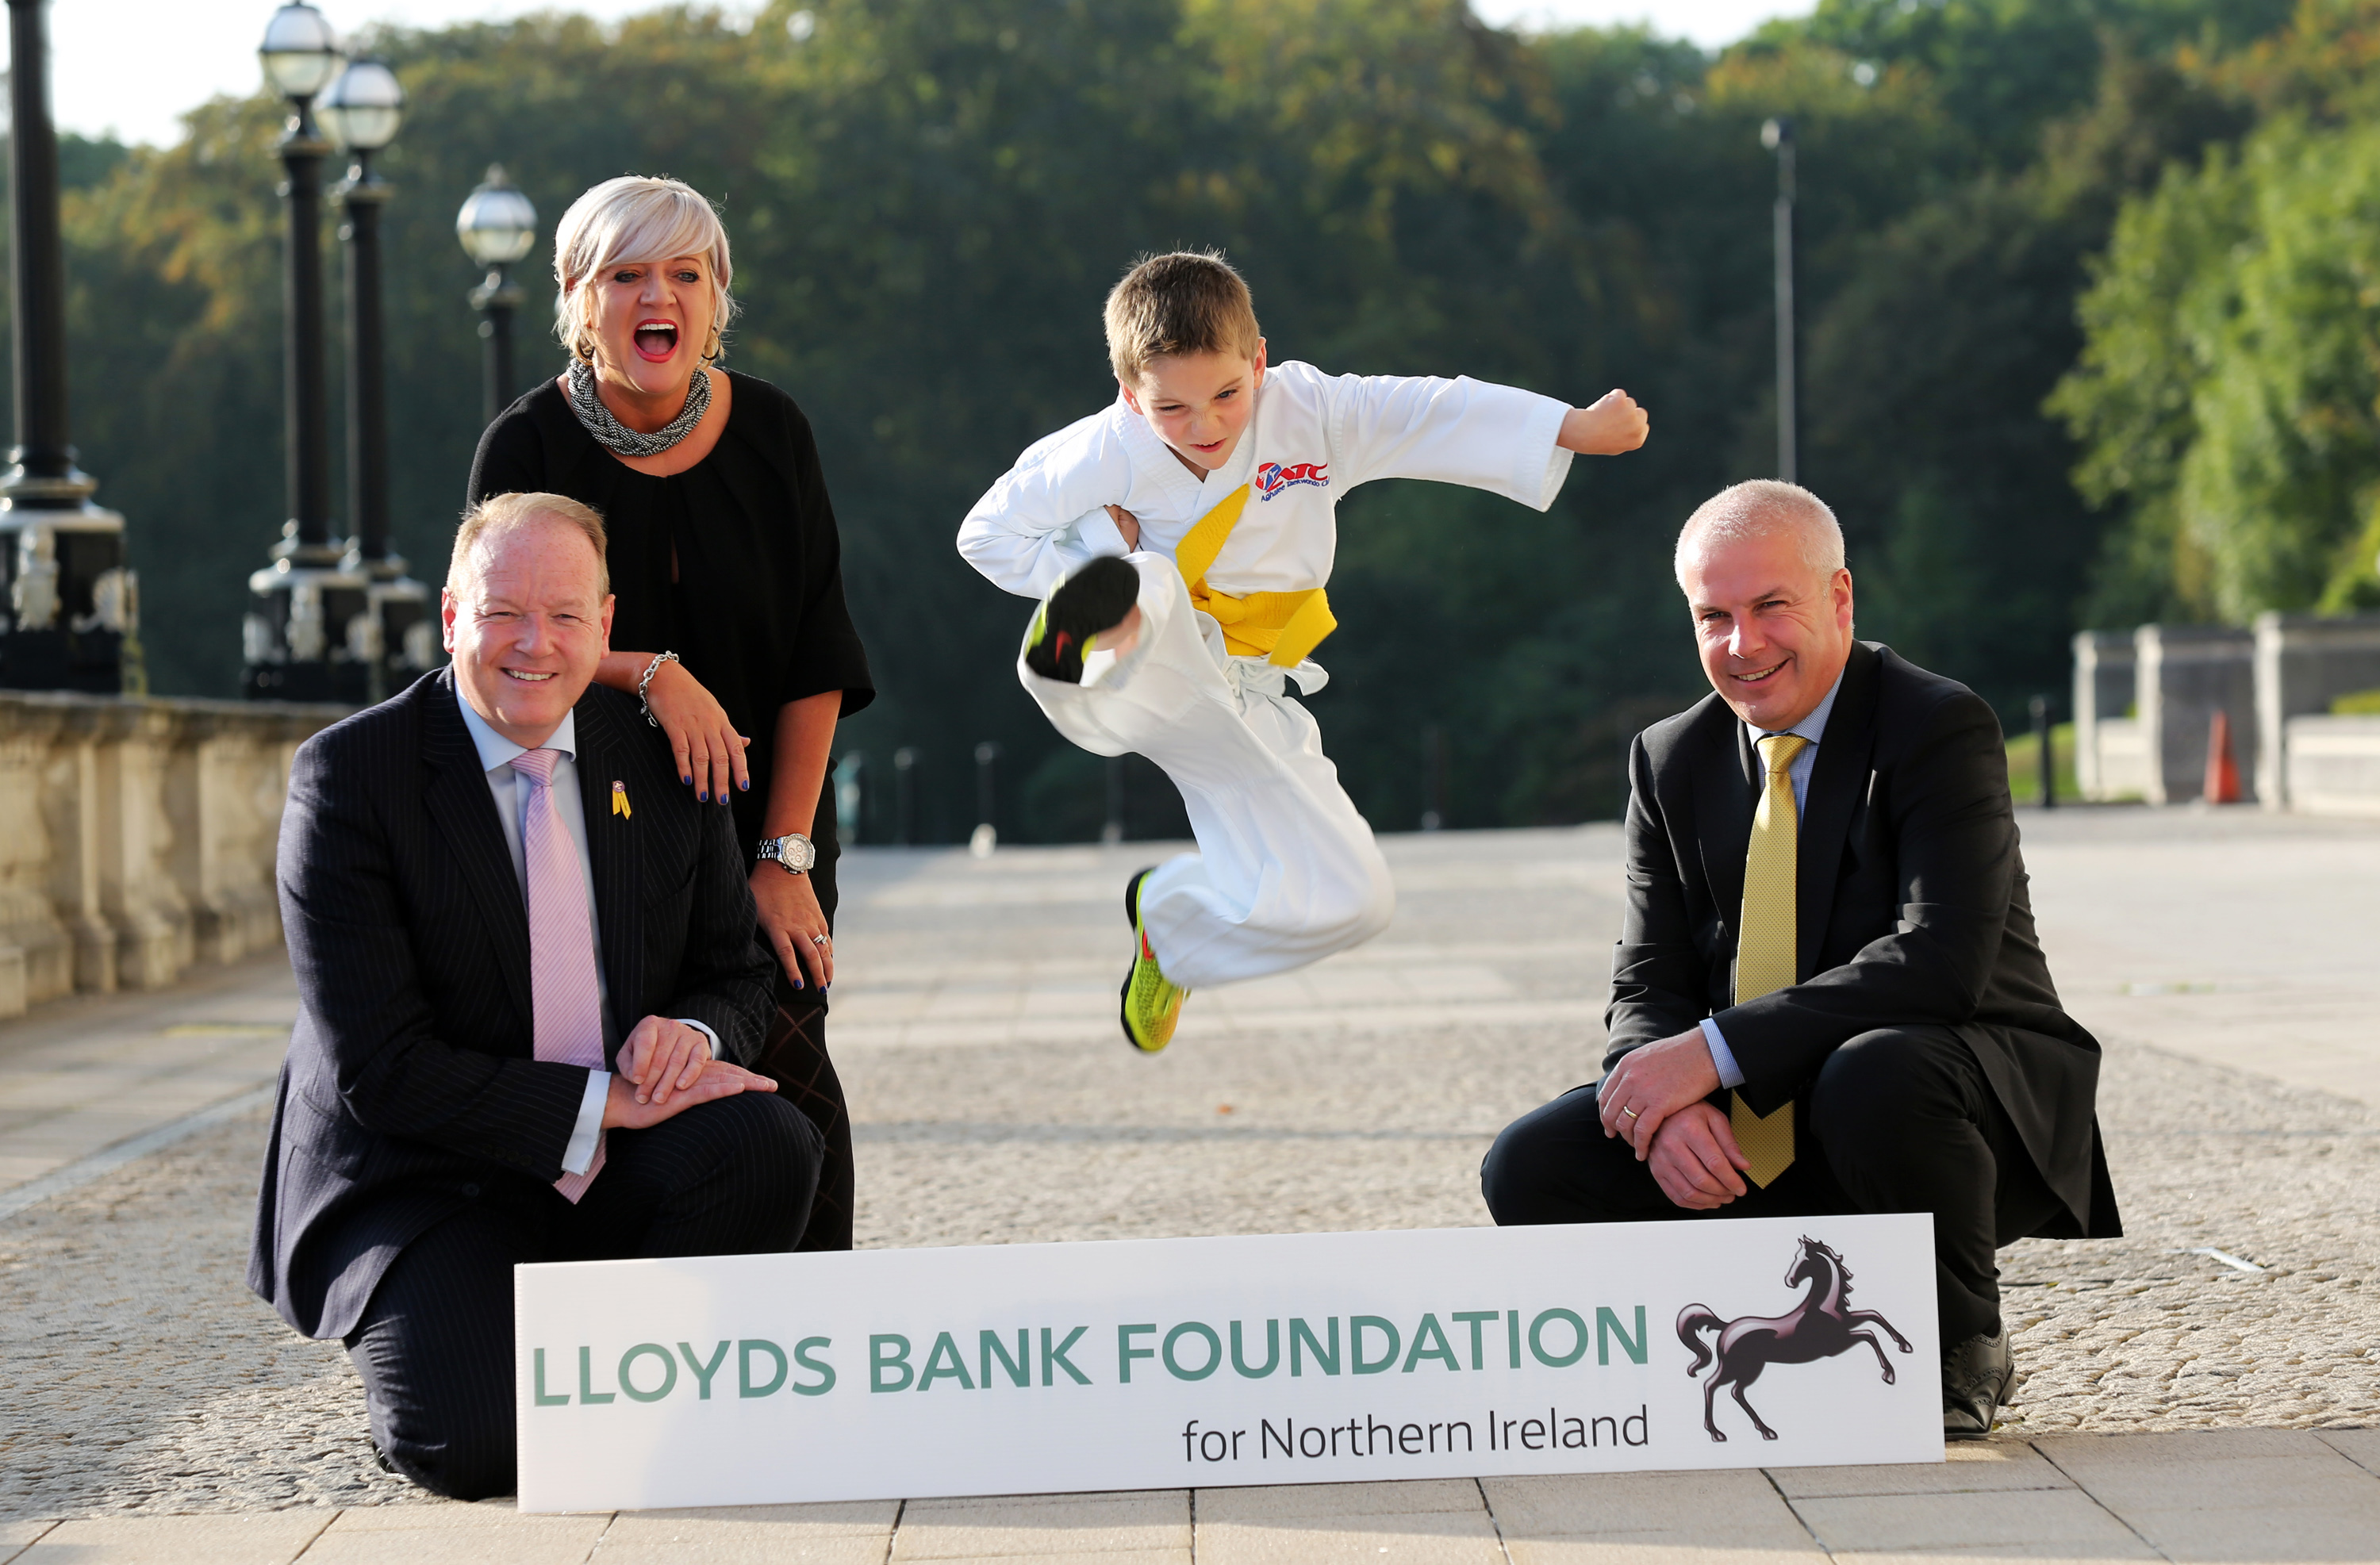 Foundation's grants touch the lives of disadvantaged